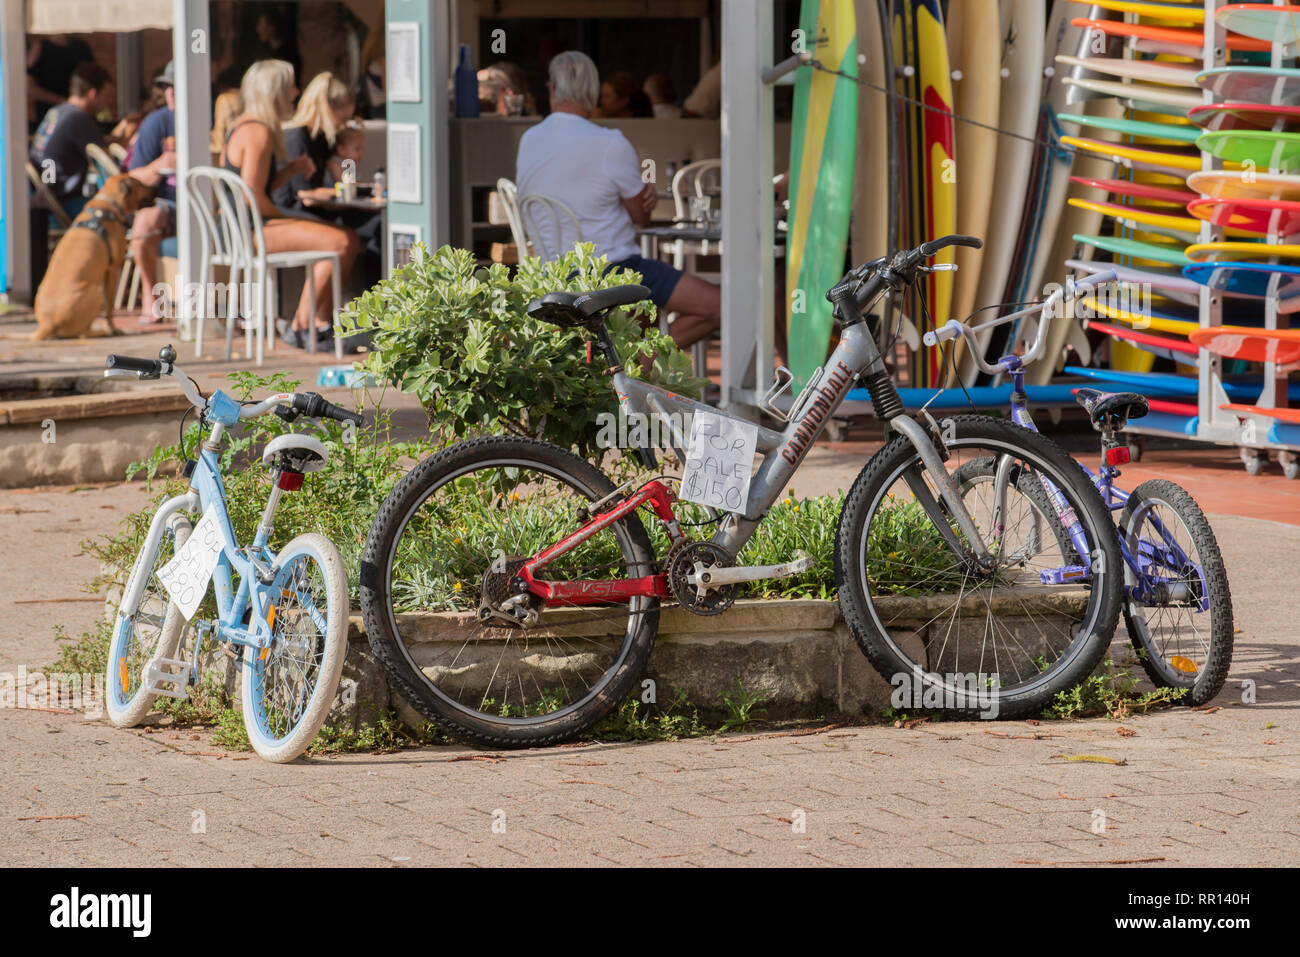 Children's used or second hand bicycles for sale outside a surf shop